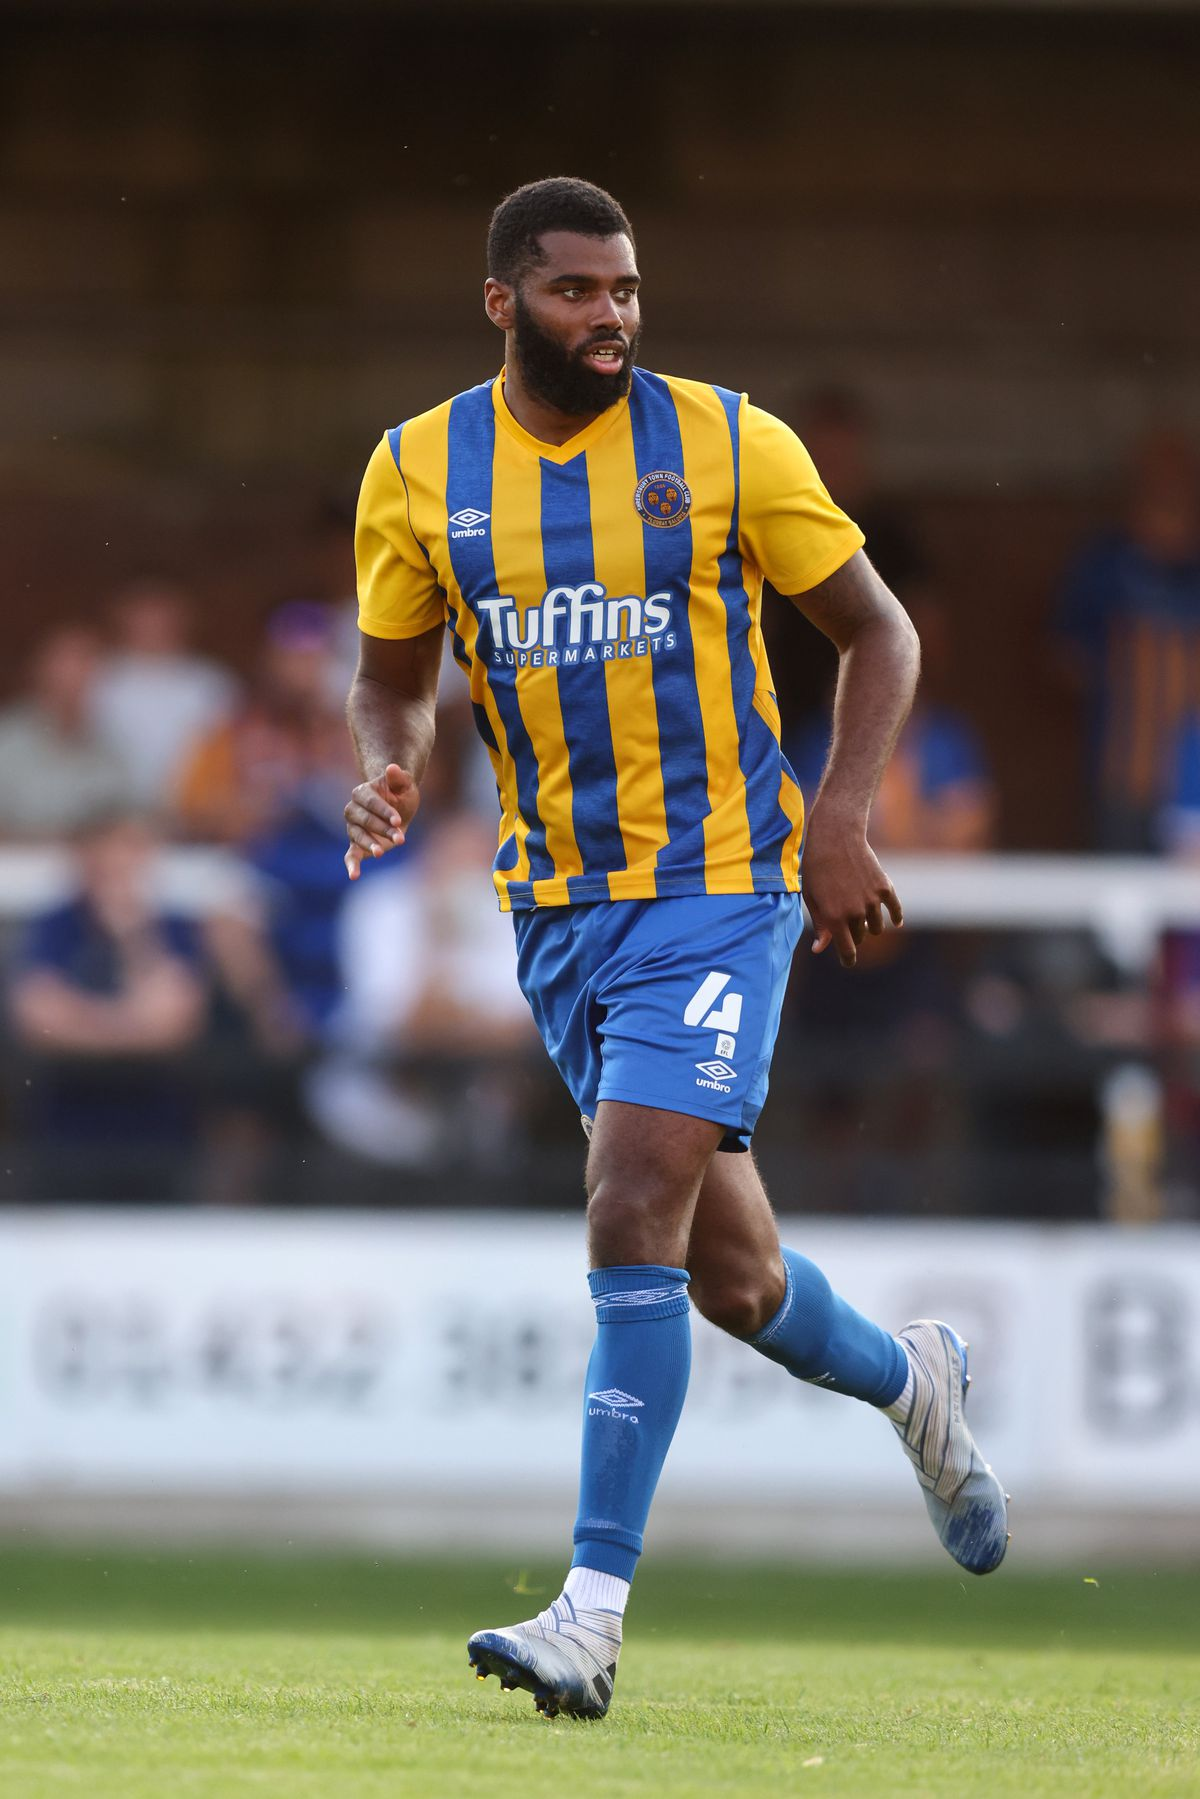 Ethan Ebanks-Landell in action in the second of Town's two friendlies, against Hereford (AMA)